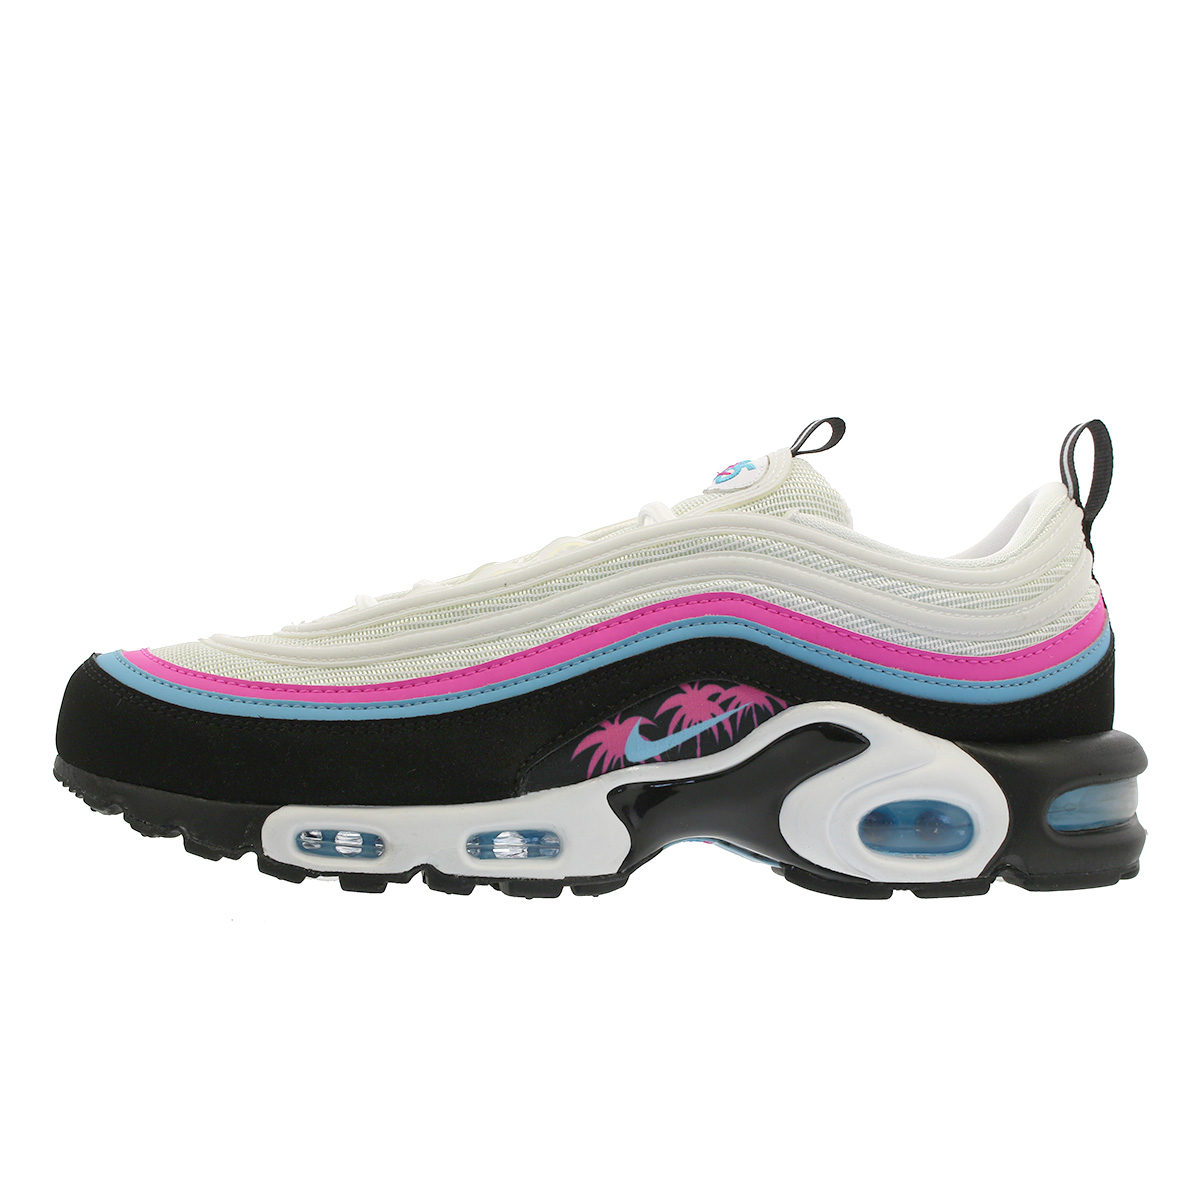 5194157730 SELECT SHOP LOWTEX: NIKE AIR MAX PLUS 97 Kie Ney AMAX +97 WHITE/BLUE ...